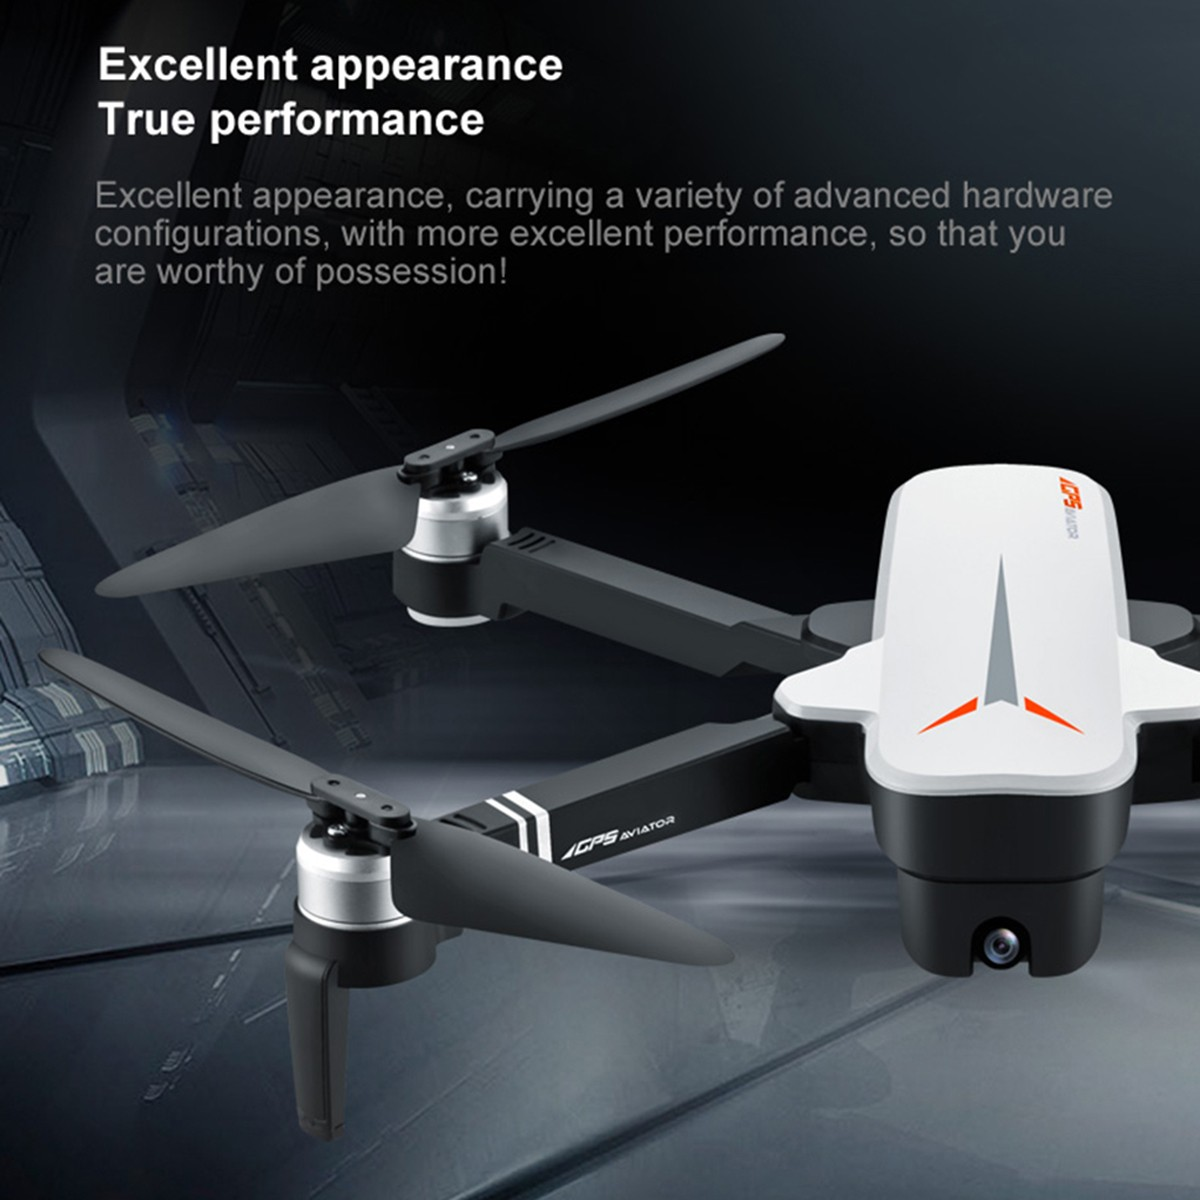 X9 Drone 4K HD GPS drone WiFi fpv Quadcopter brushless motor servo camera intelligent return drone with camera in RC Helicopters from Toys Hobbies